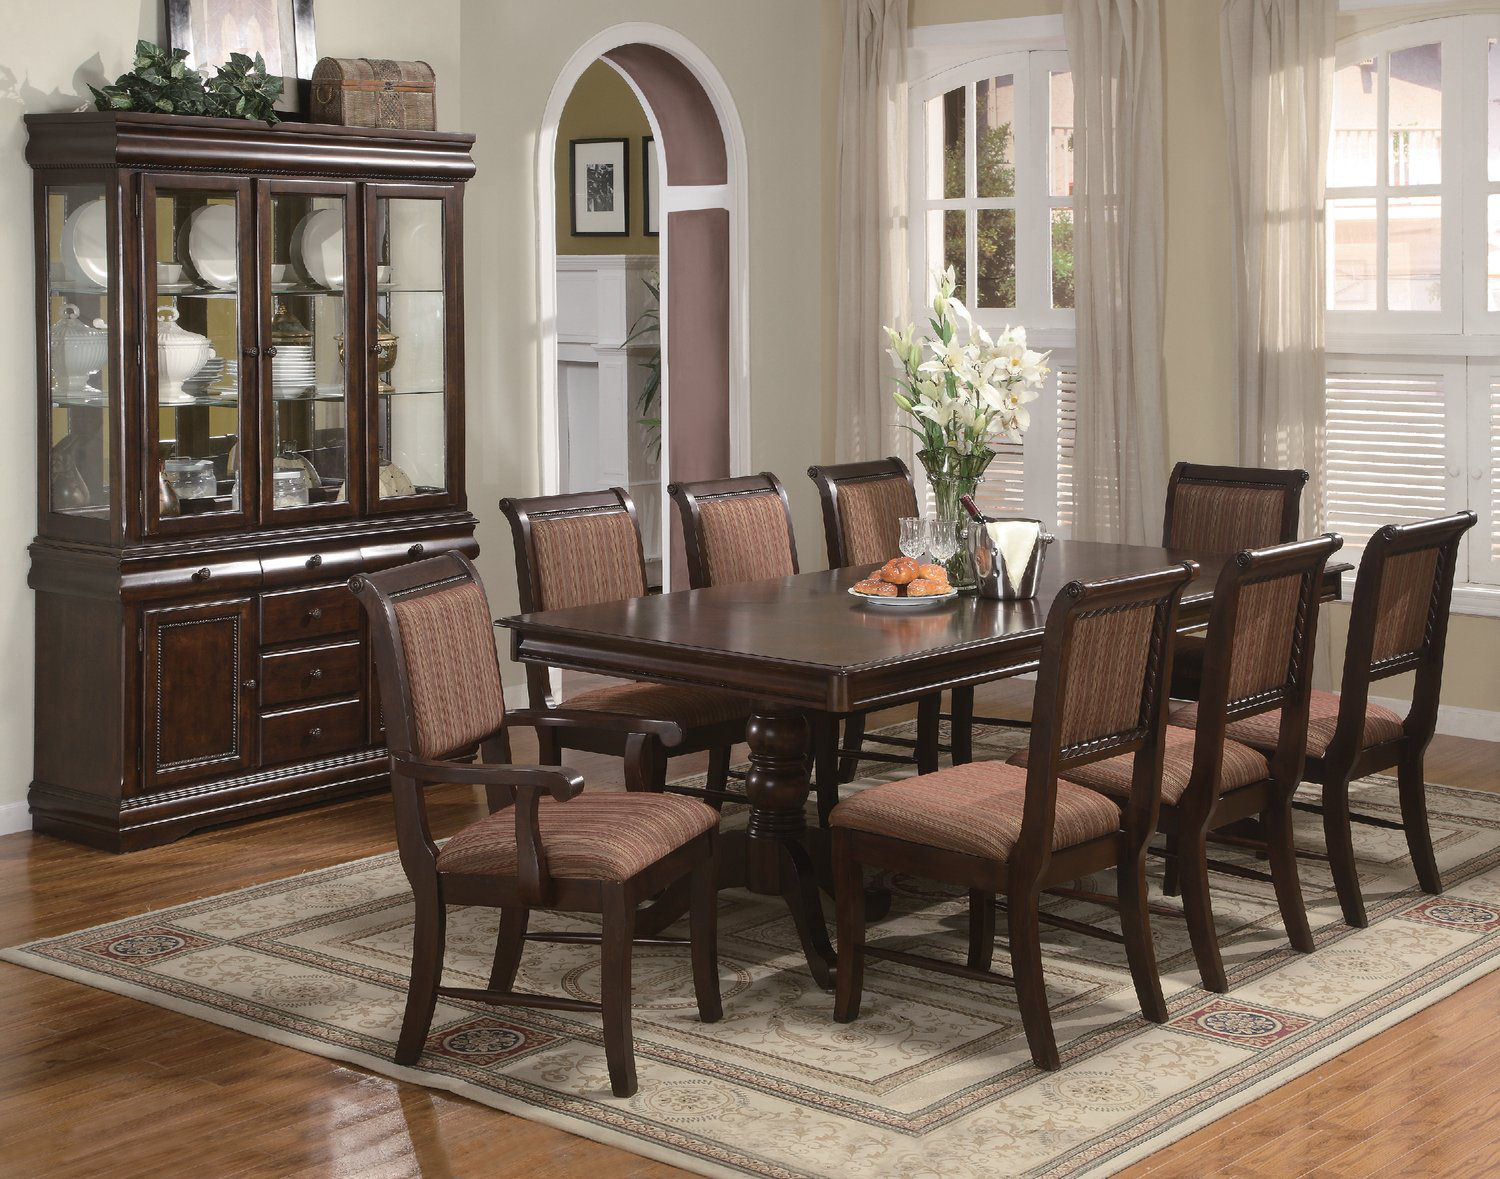 Louis merlot formal dining table with 4 side chairs